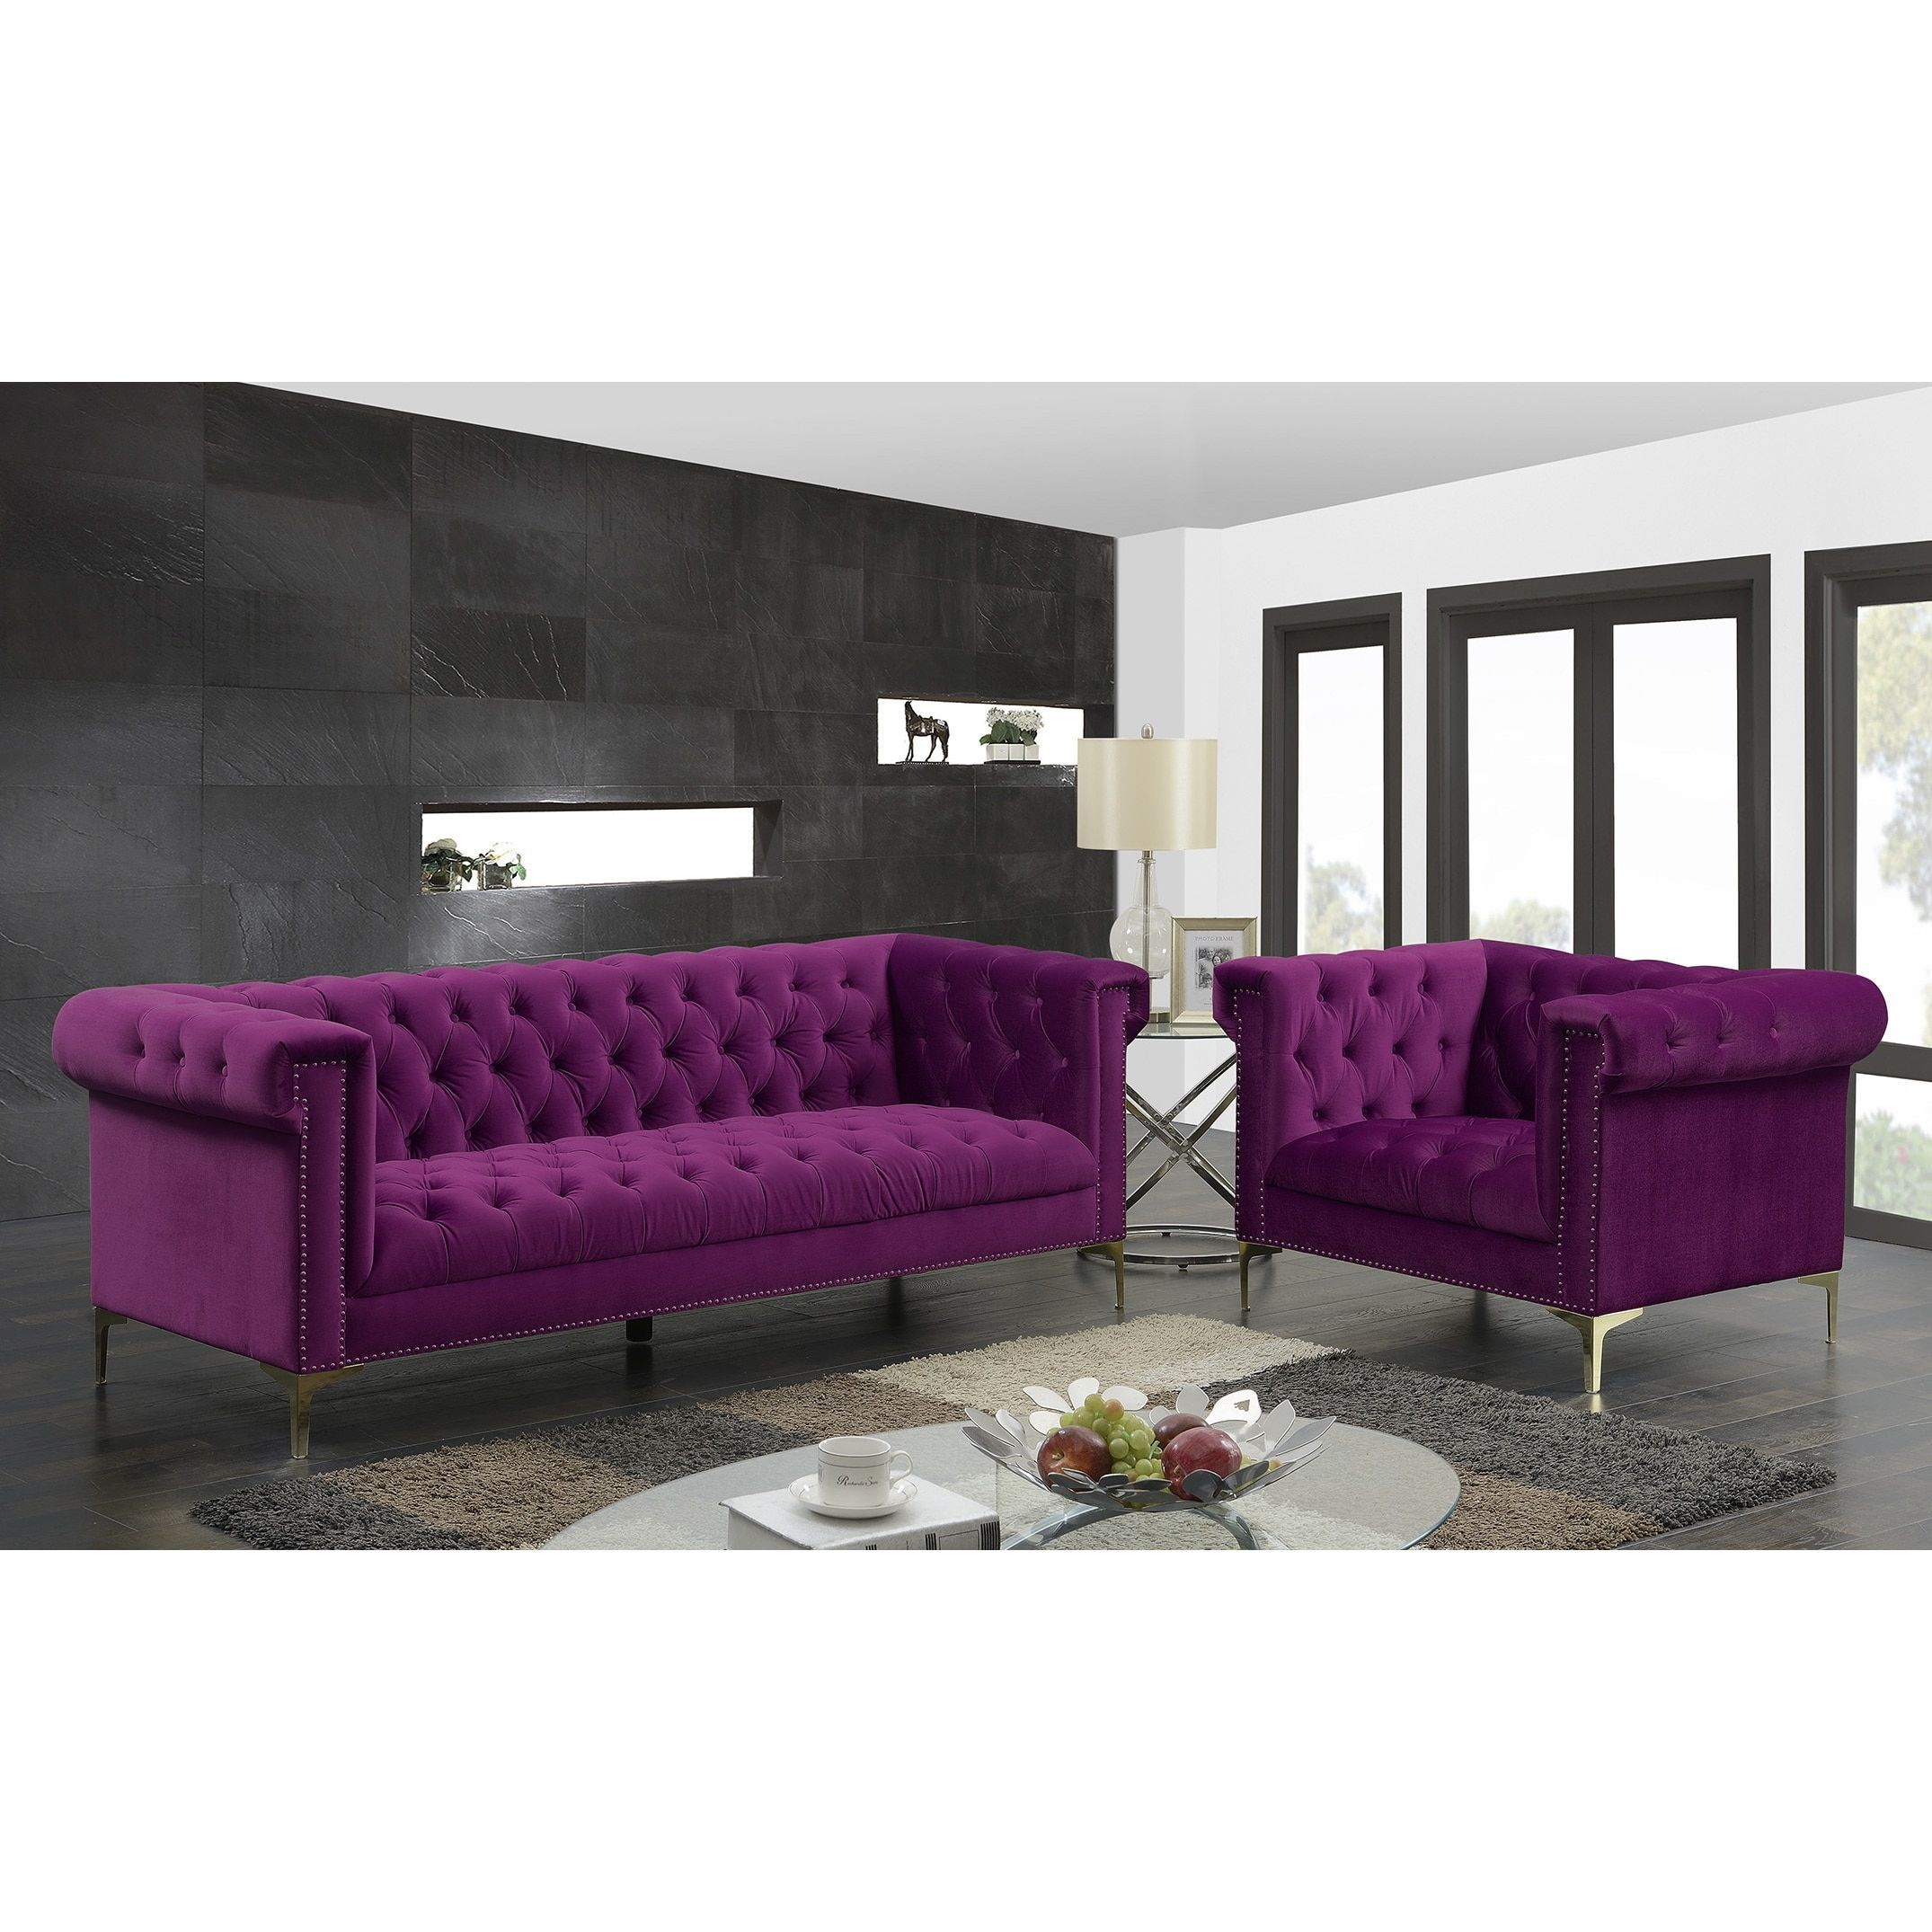 aubergine decor to room chaise your and complete sleeper warm colored lounge ro sofa slipcover purple velvet furniture plum lavender chesterfield loveseat living eggplant couch